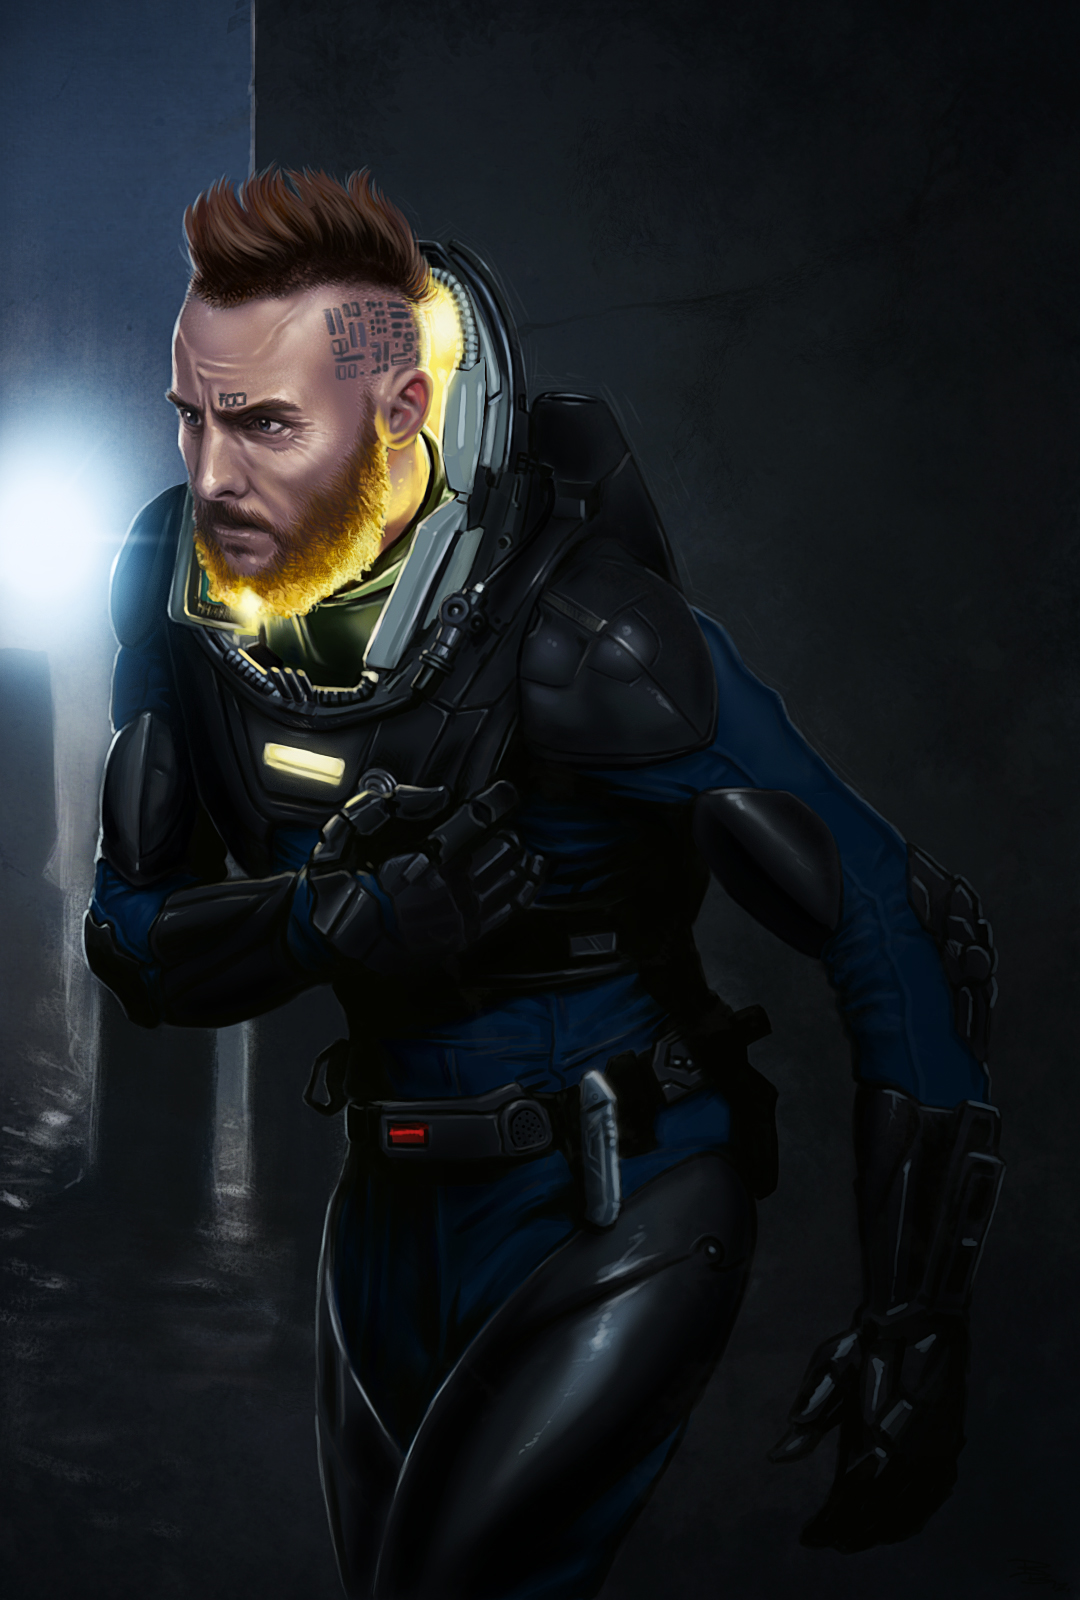 Prometheus fan art Fifield by digitalinkrod on DeviantArt